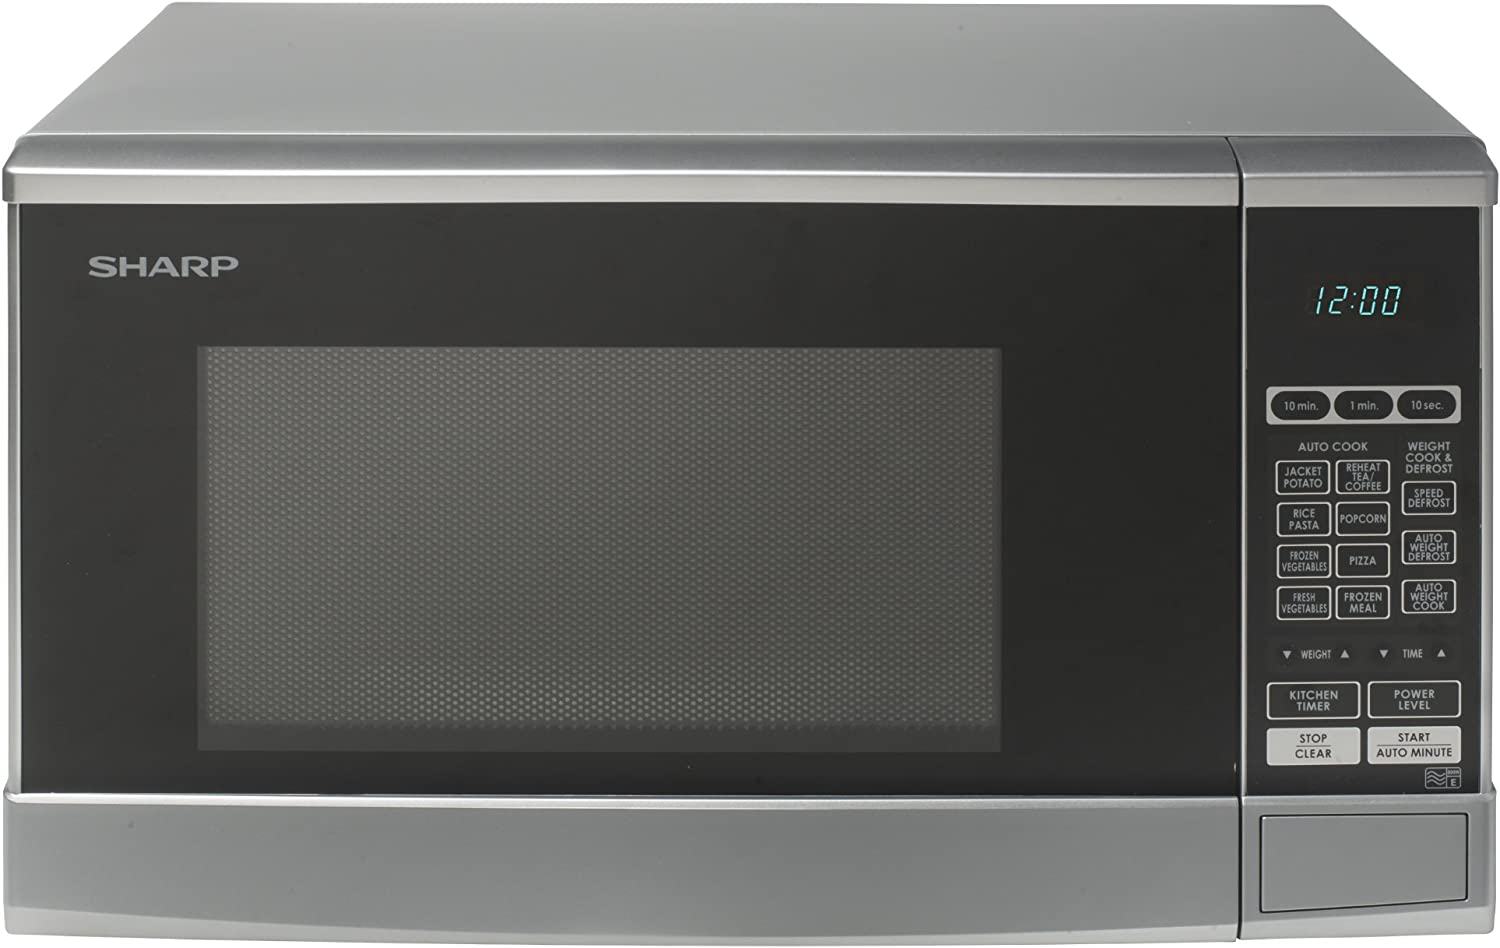 Check out Sharp R270 Silver Microwave